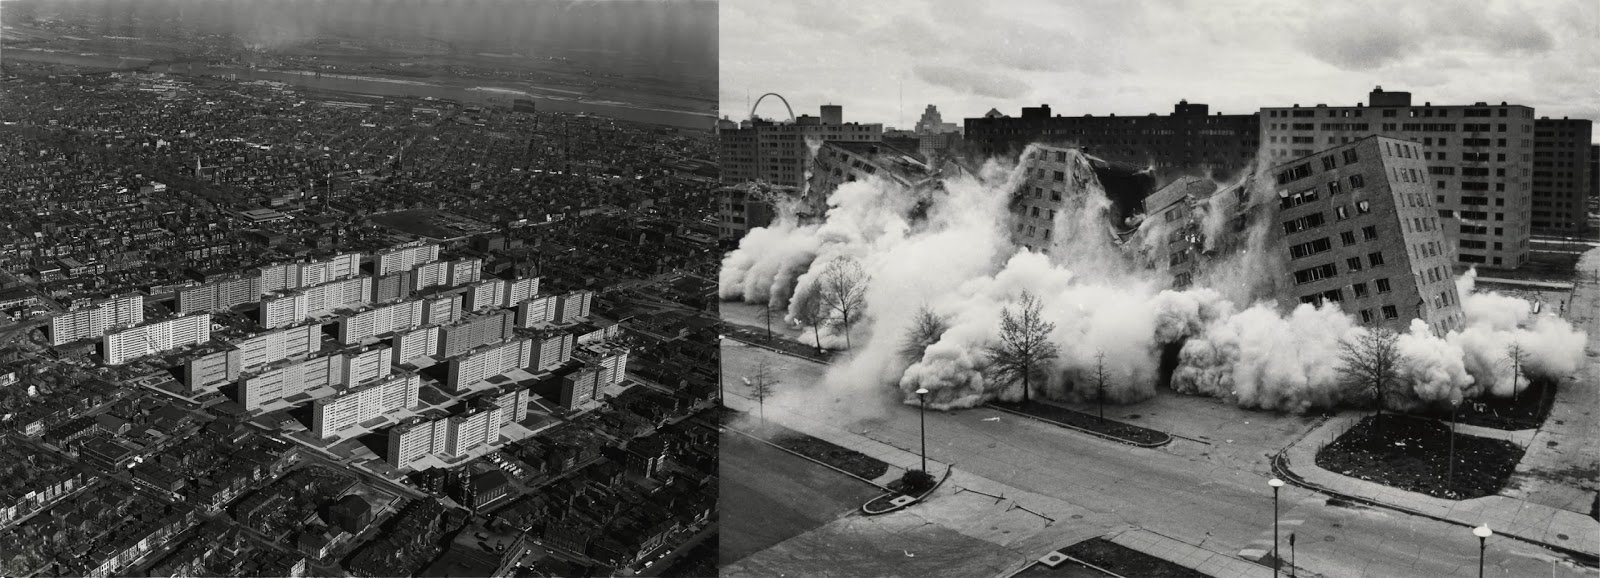 Film: The Pruitt-Igoe Myth feature image